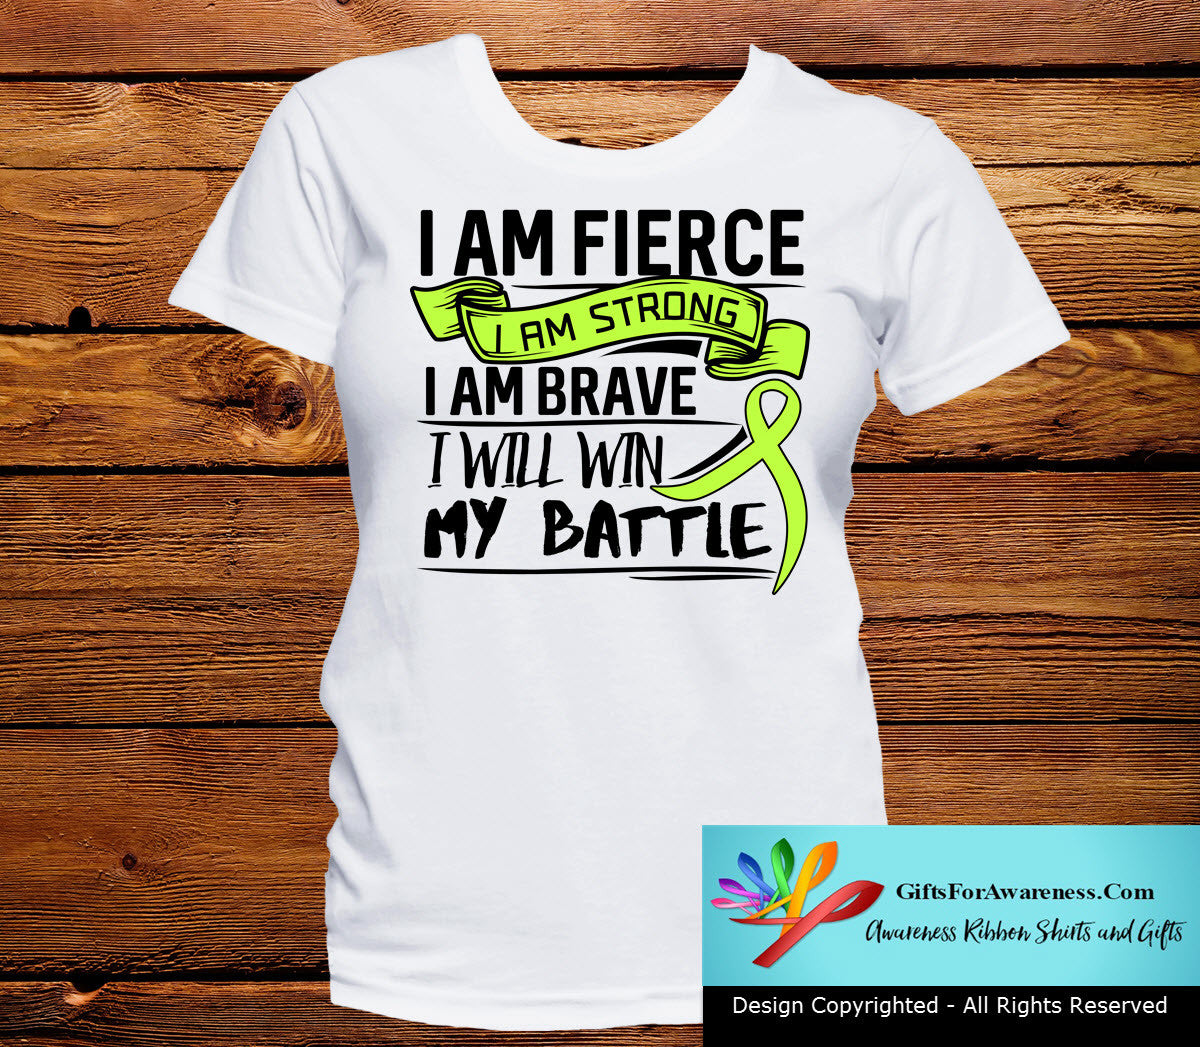 Lymphoma I Am Fierce Strong and Brave - GiftsForAwareness